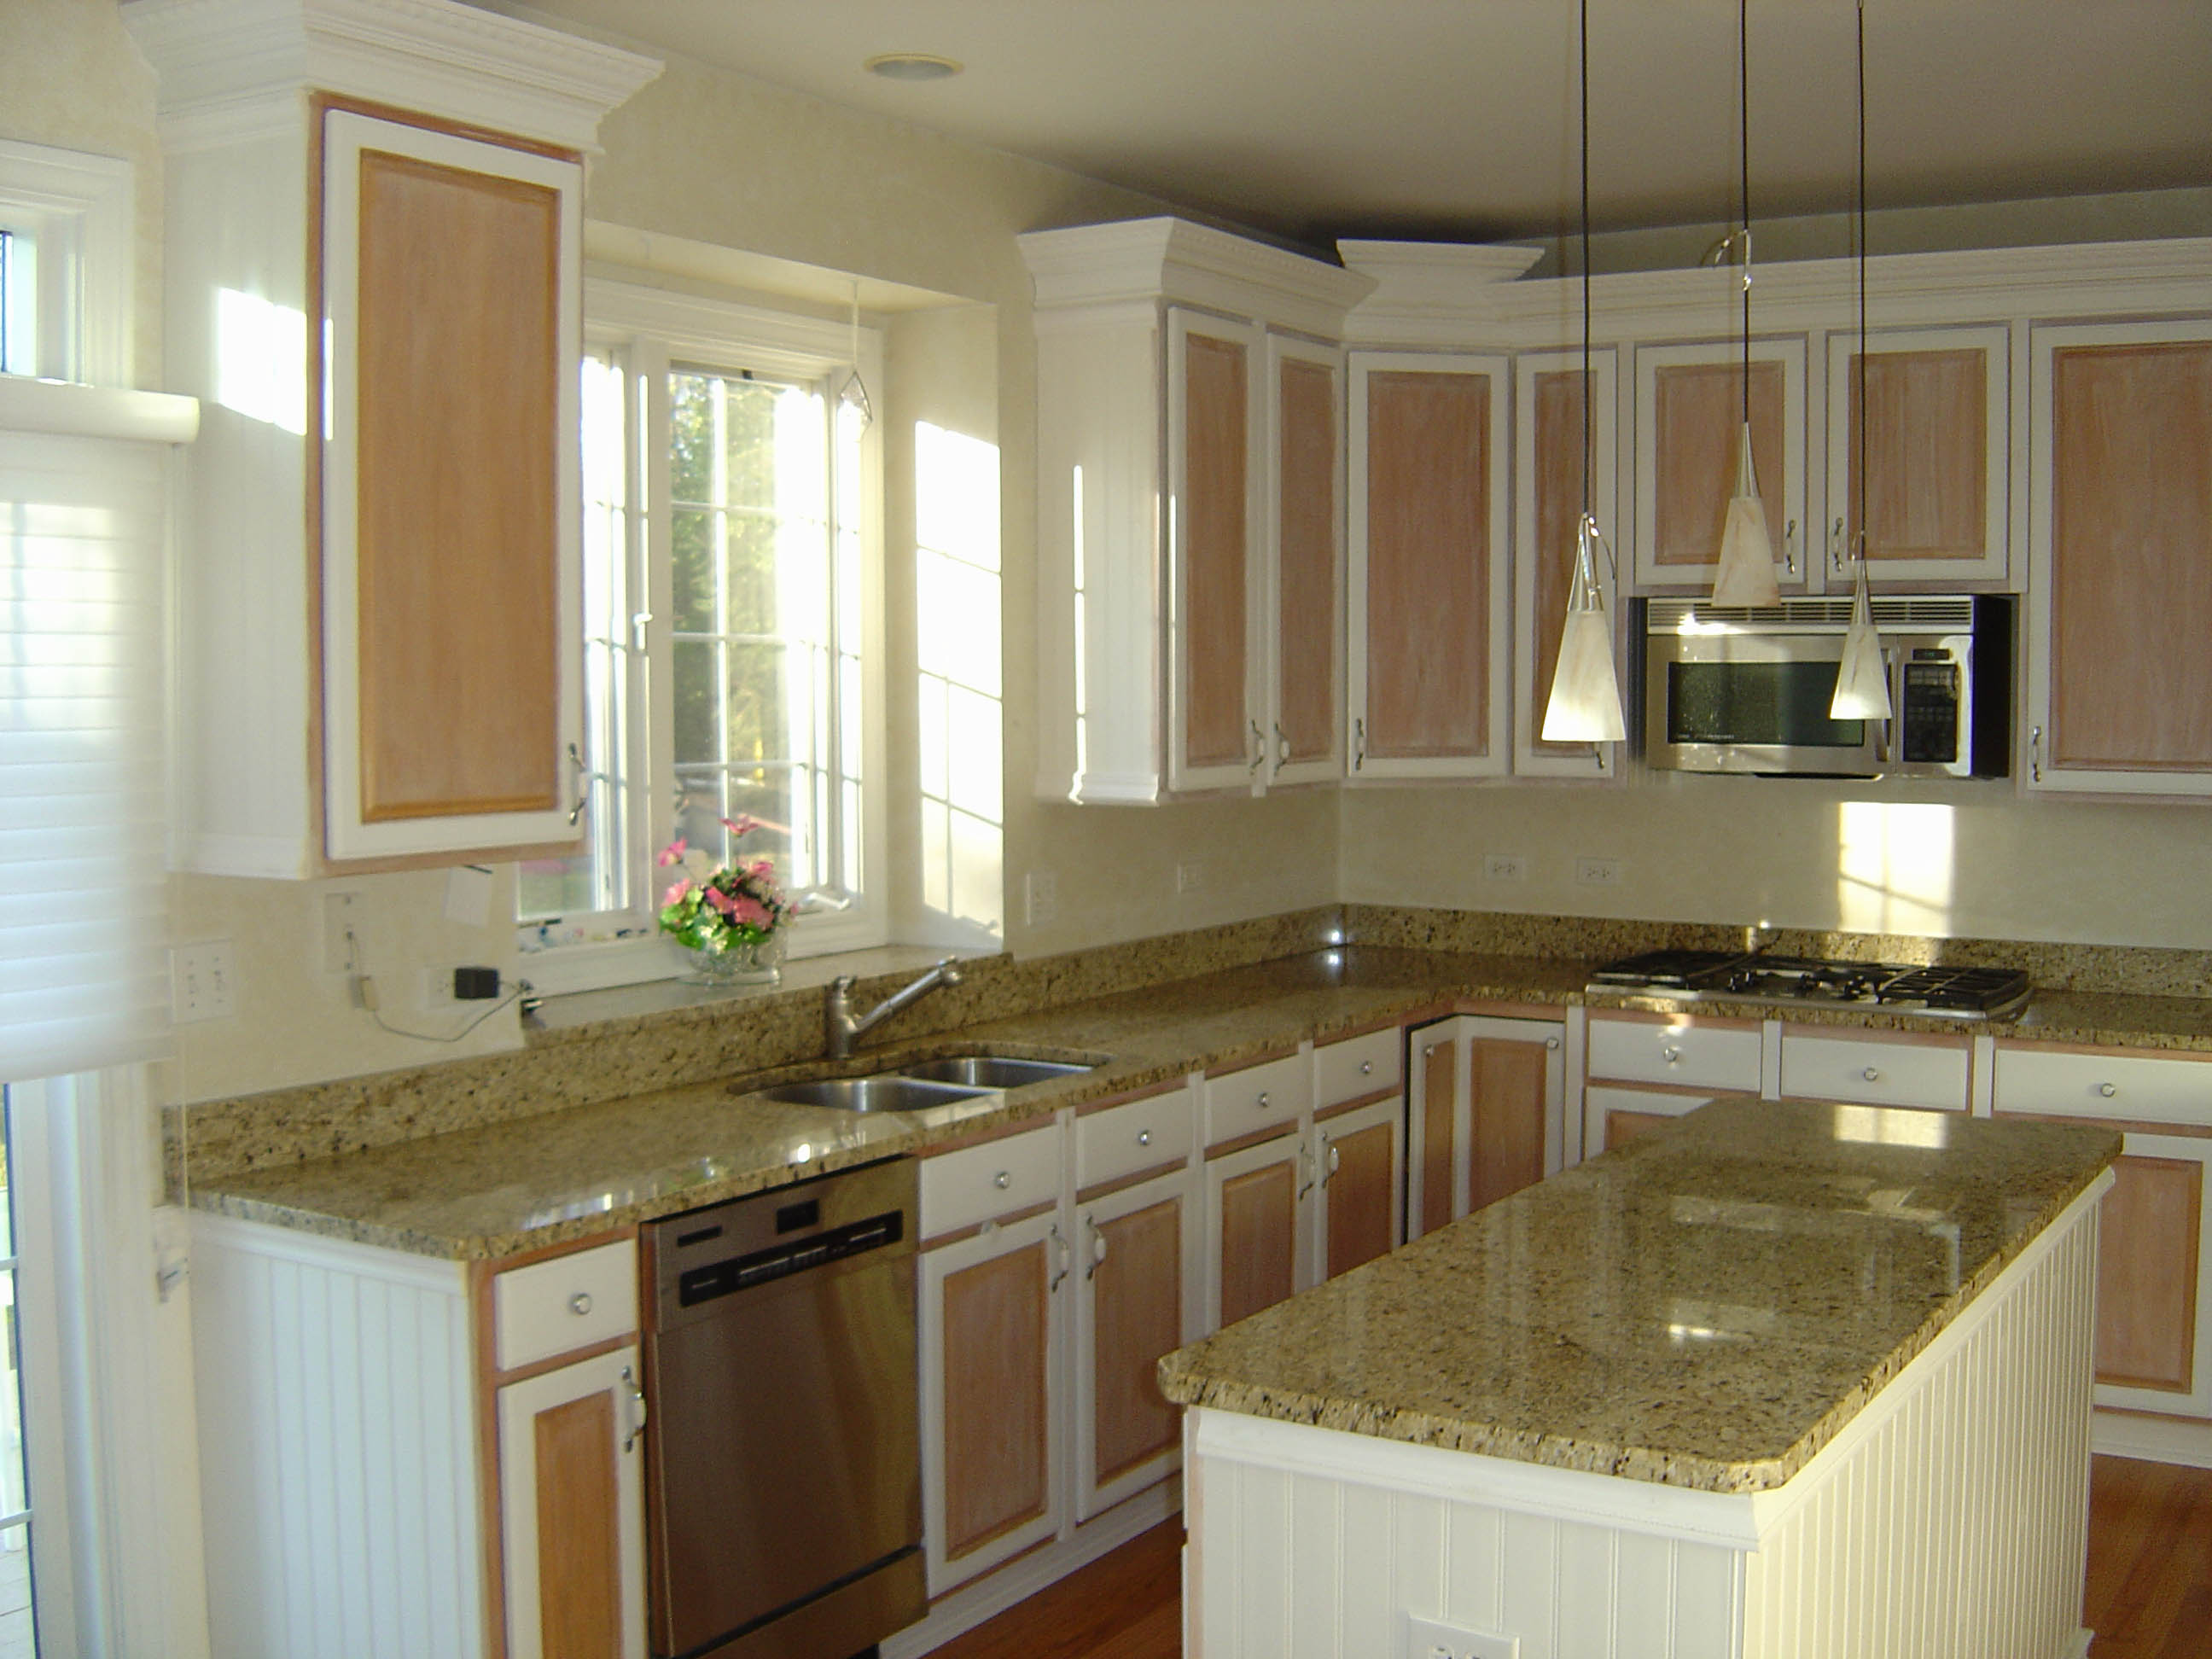 best files cost of to and brakes replace the countertops concept kitchen cabinets rear how does much countertop it styles reface uncategorized